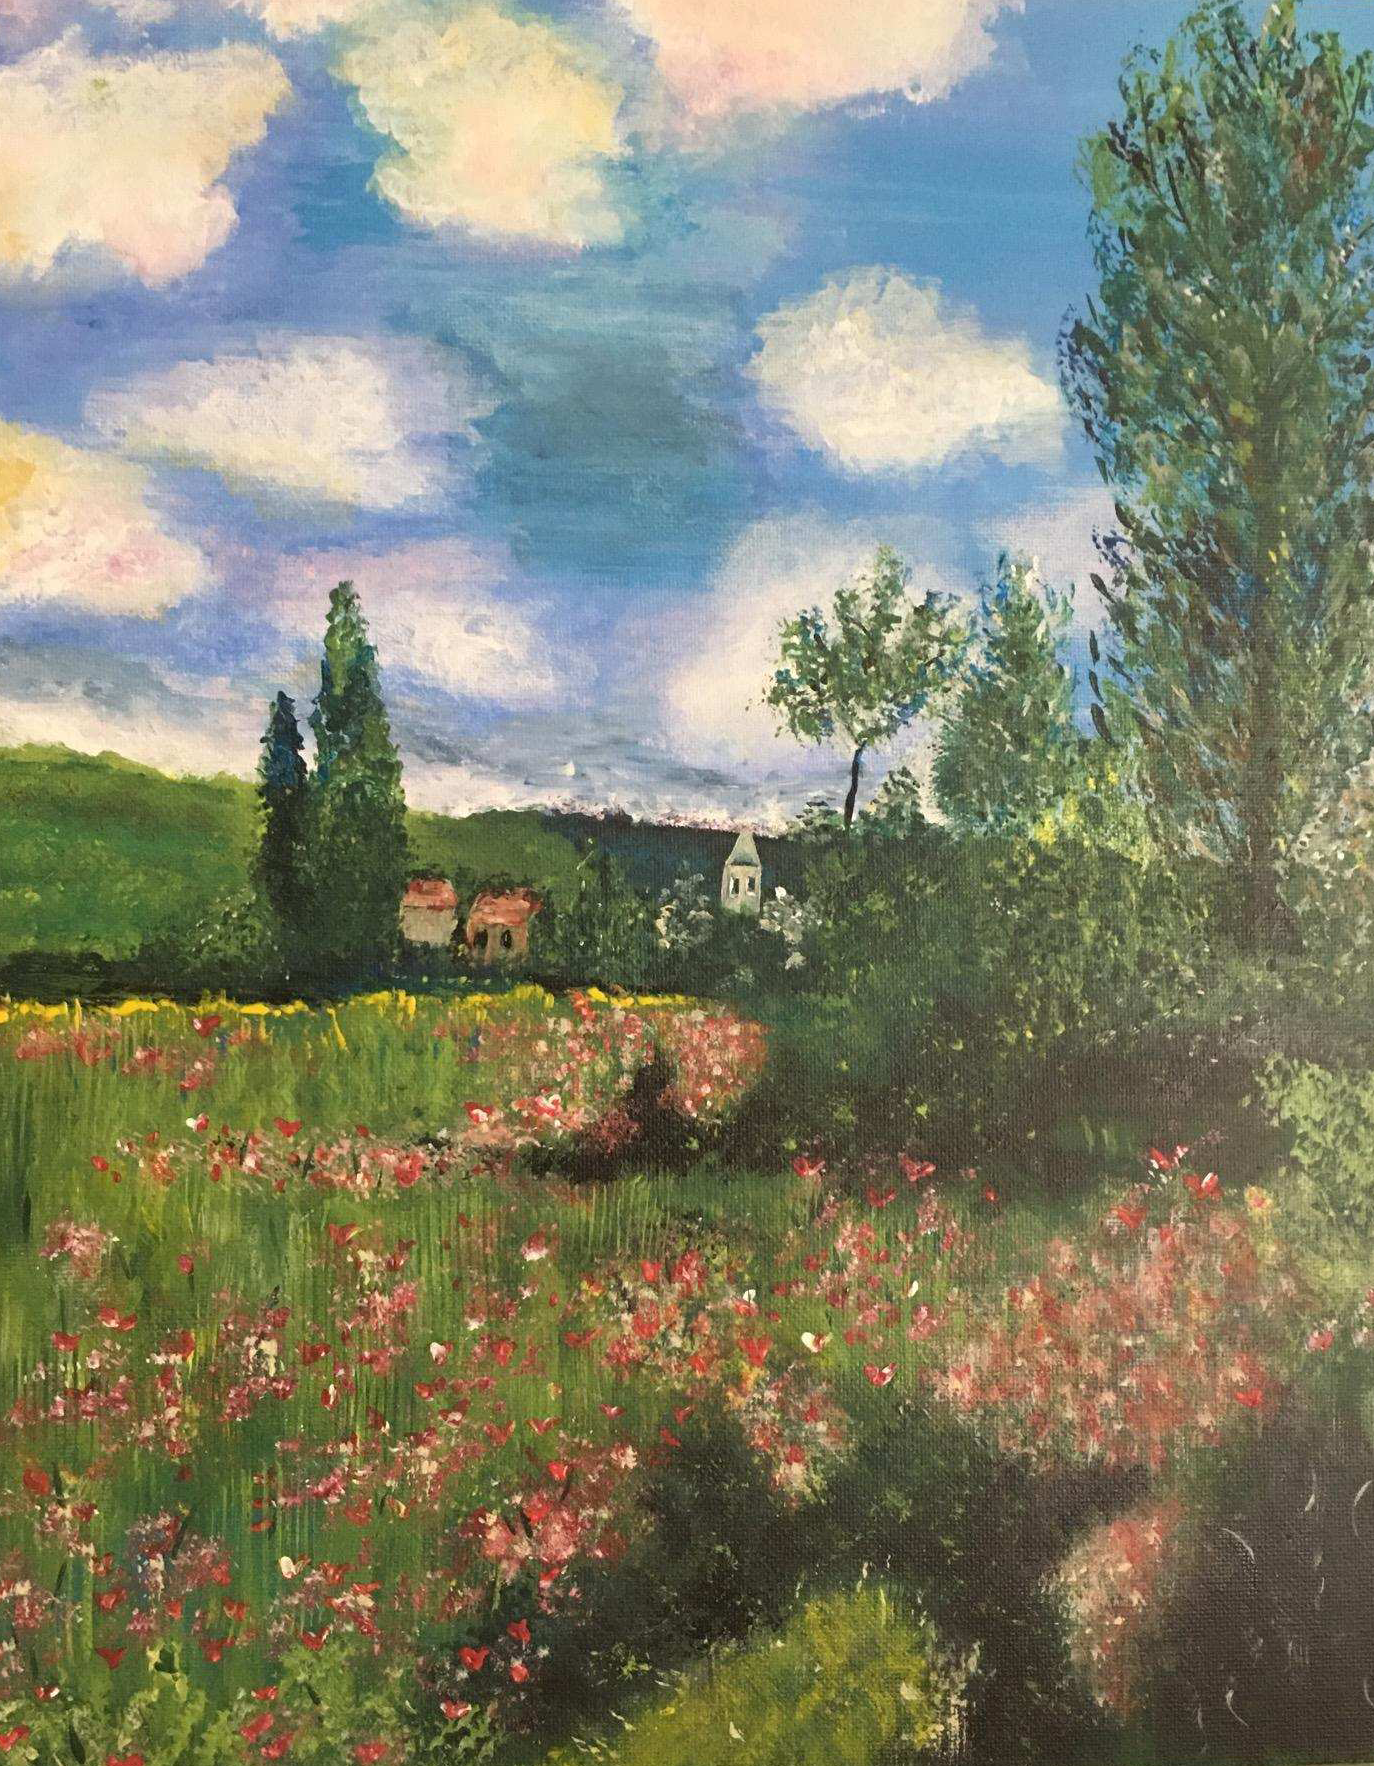 Rendition of Monet's Lane in the Poppy Fields Ile Saint Martin by Anita